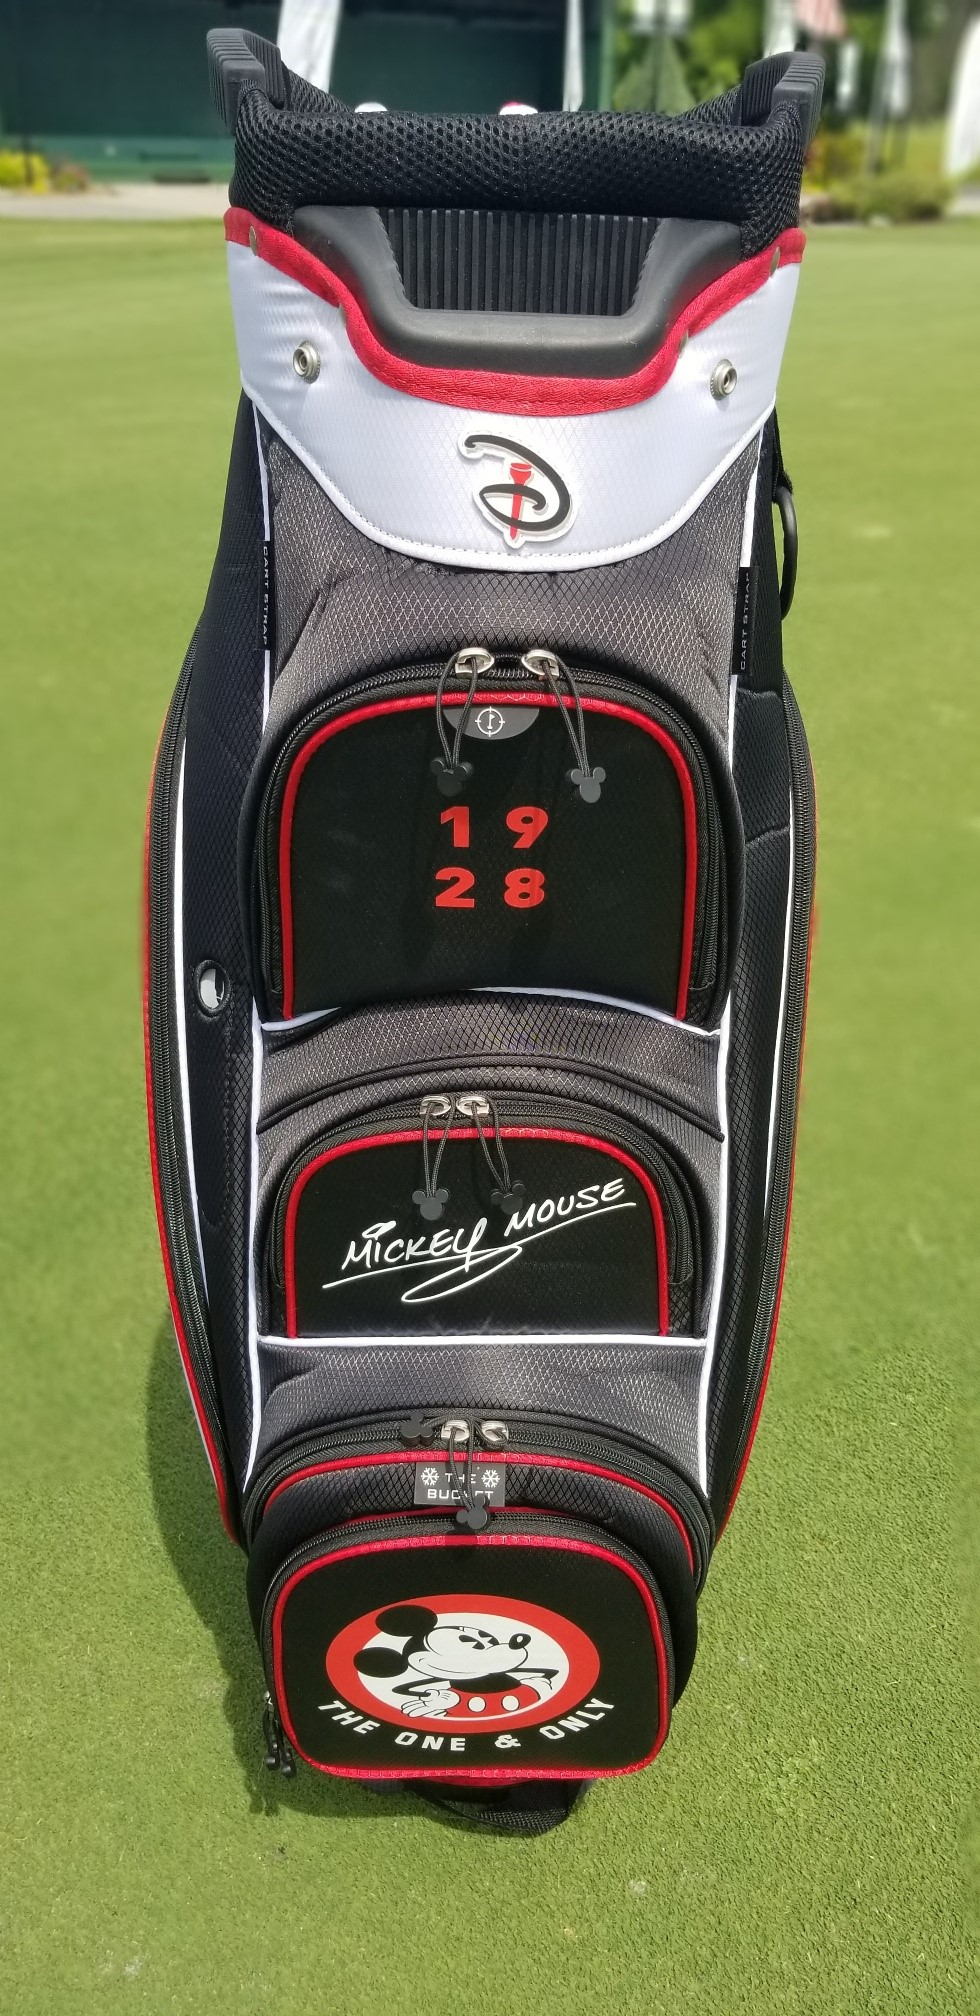 Mickey Mouse Golf Bags